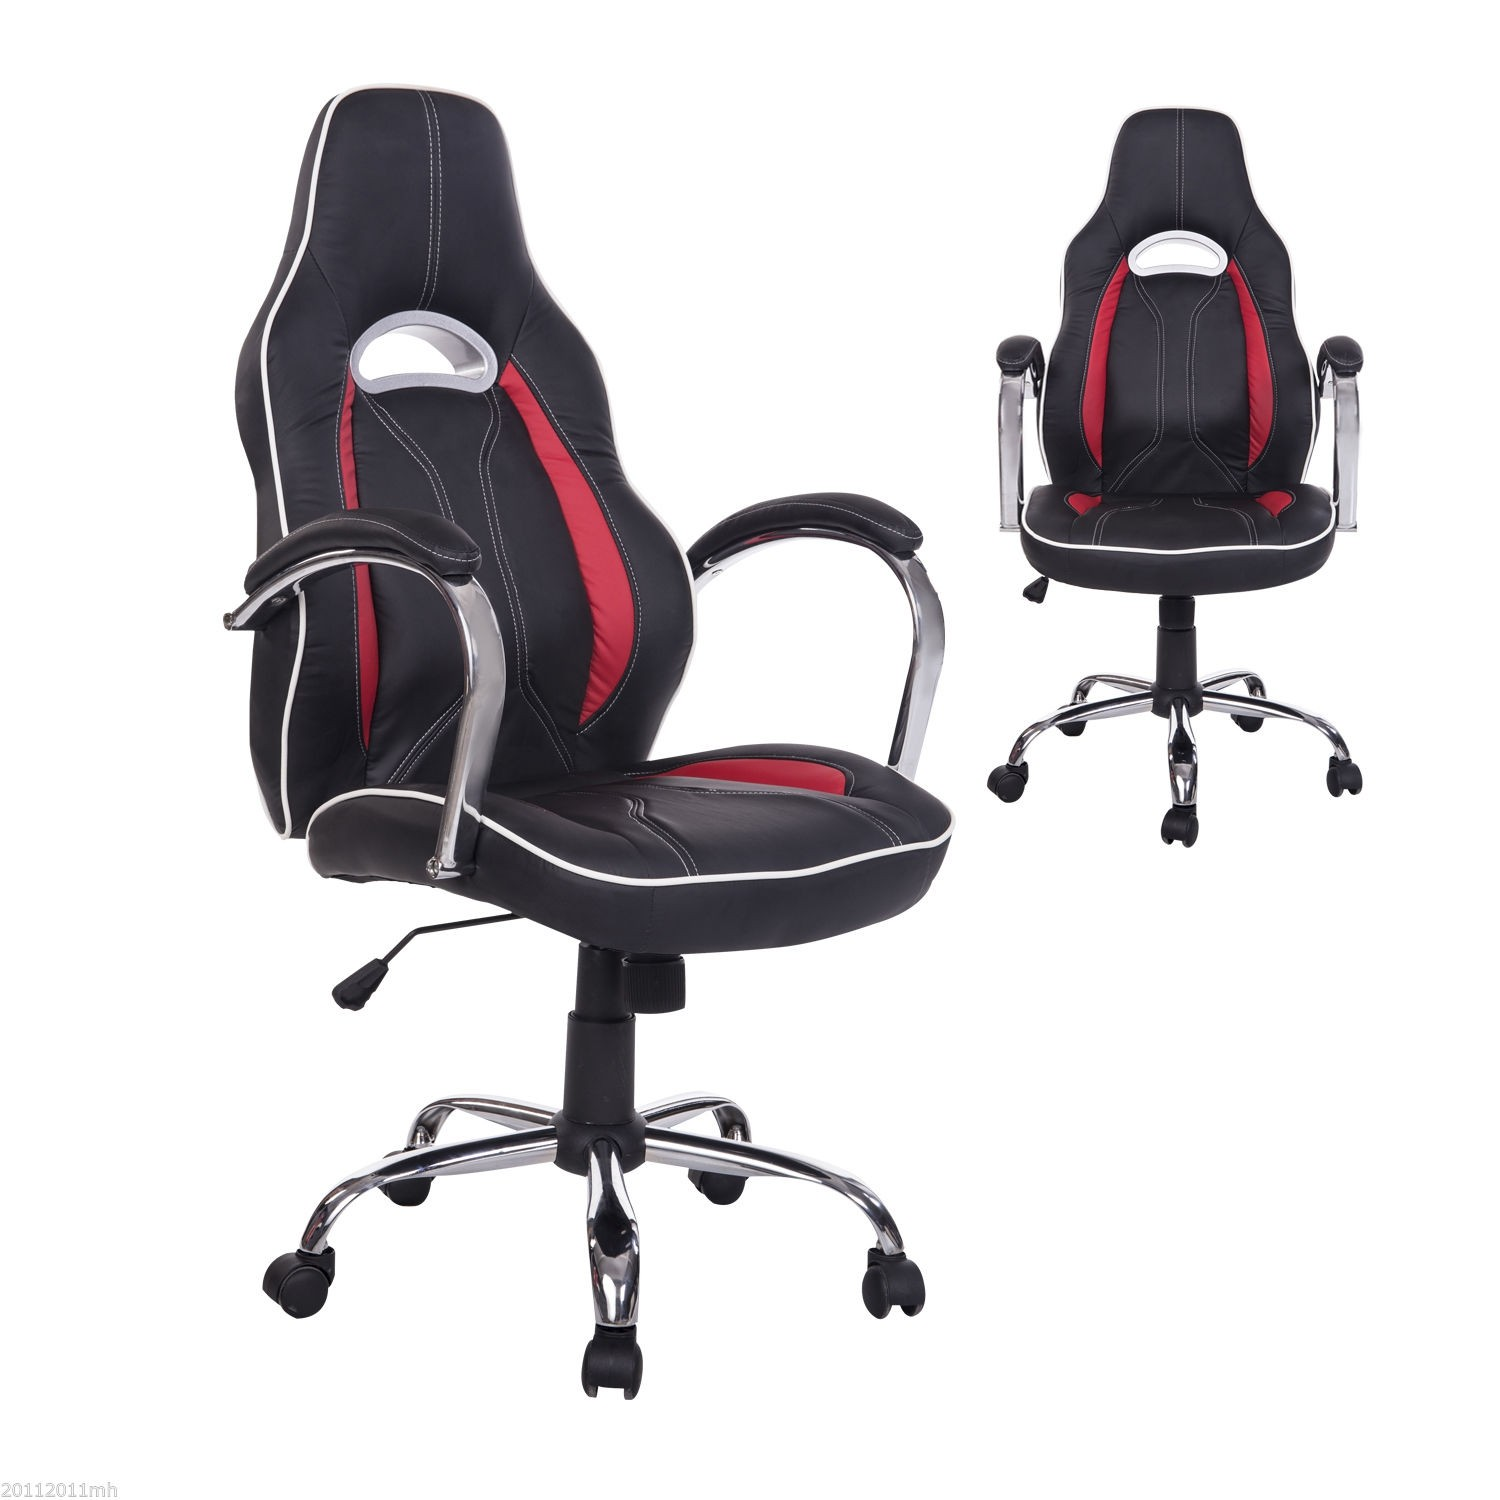 HOM Executive Racing fice Chair PU Leather Red Gaming Chairs